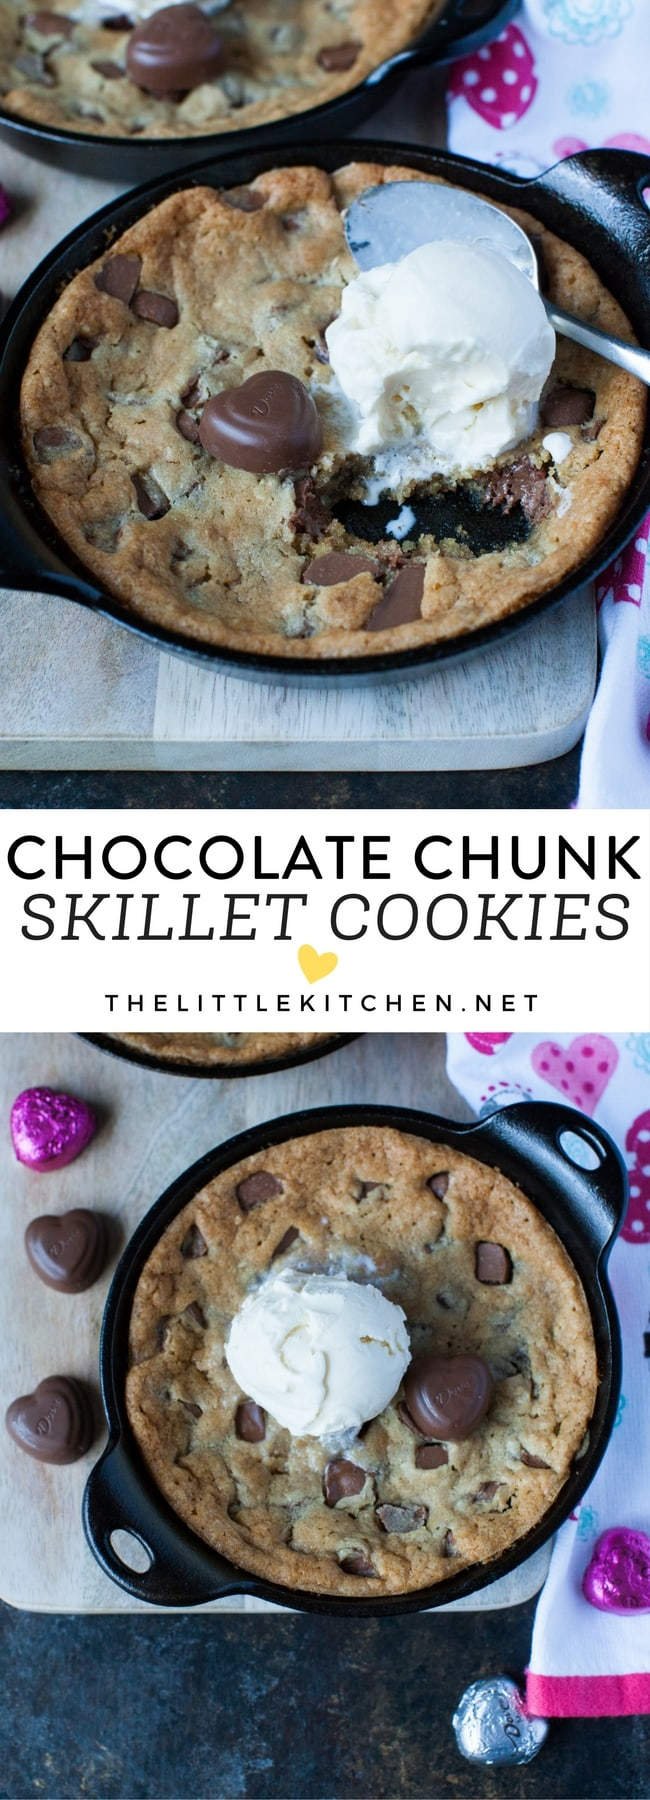 Chocolate Chunk Skillet Cookies from thelittlekitchen.net